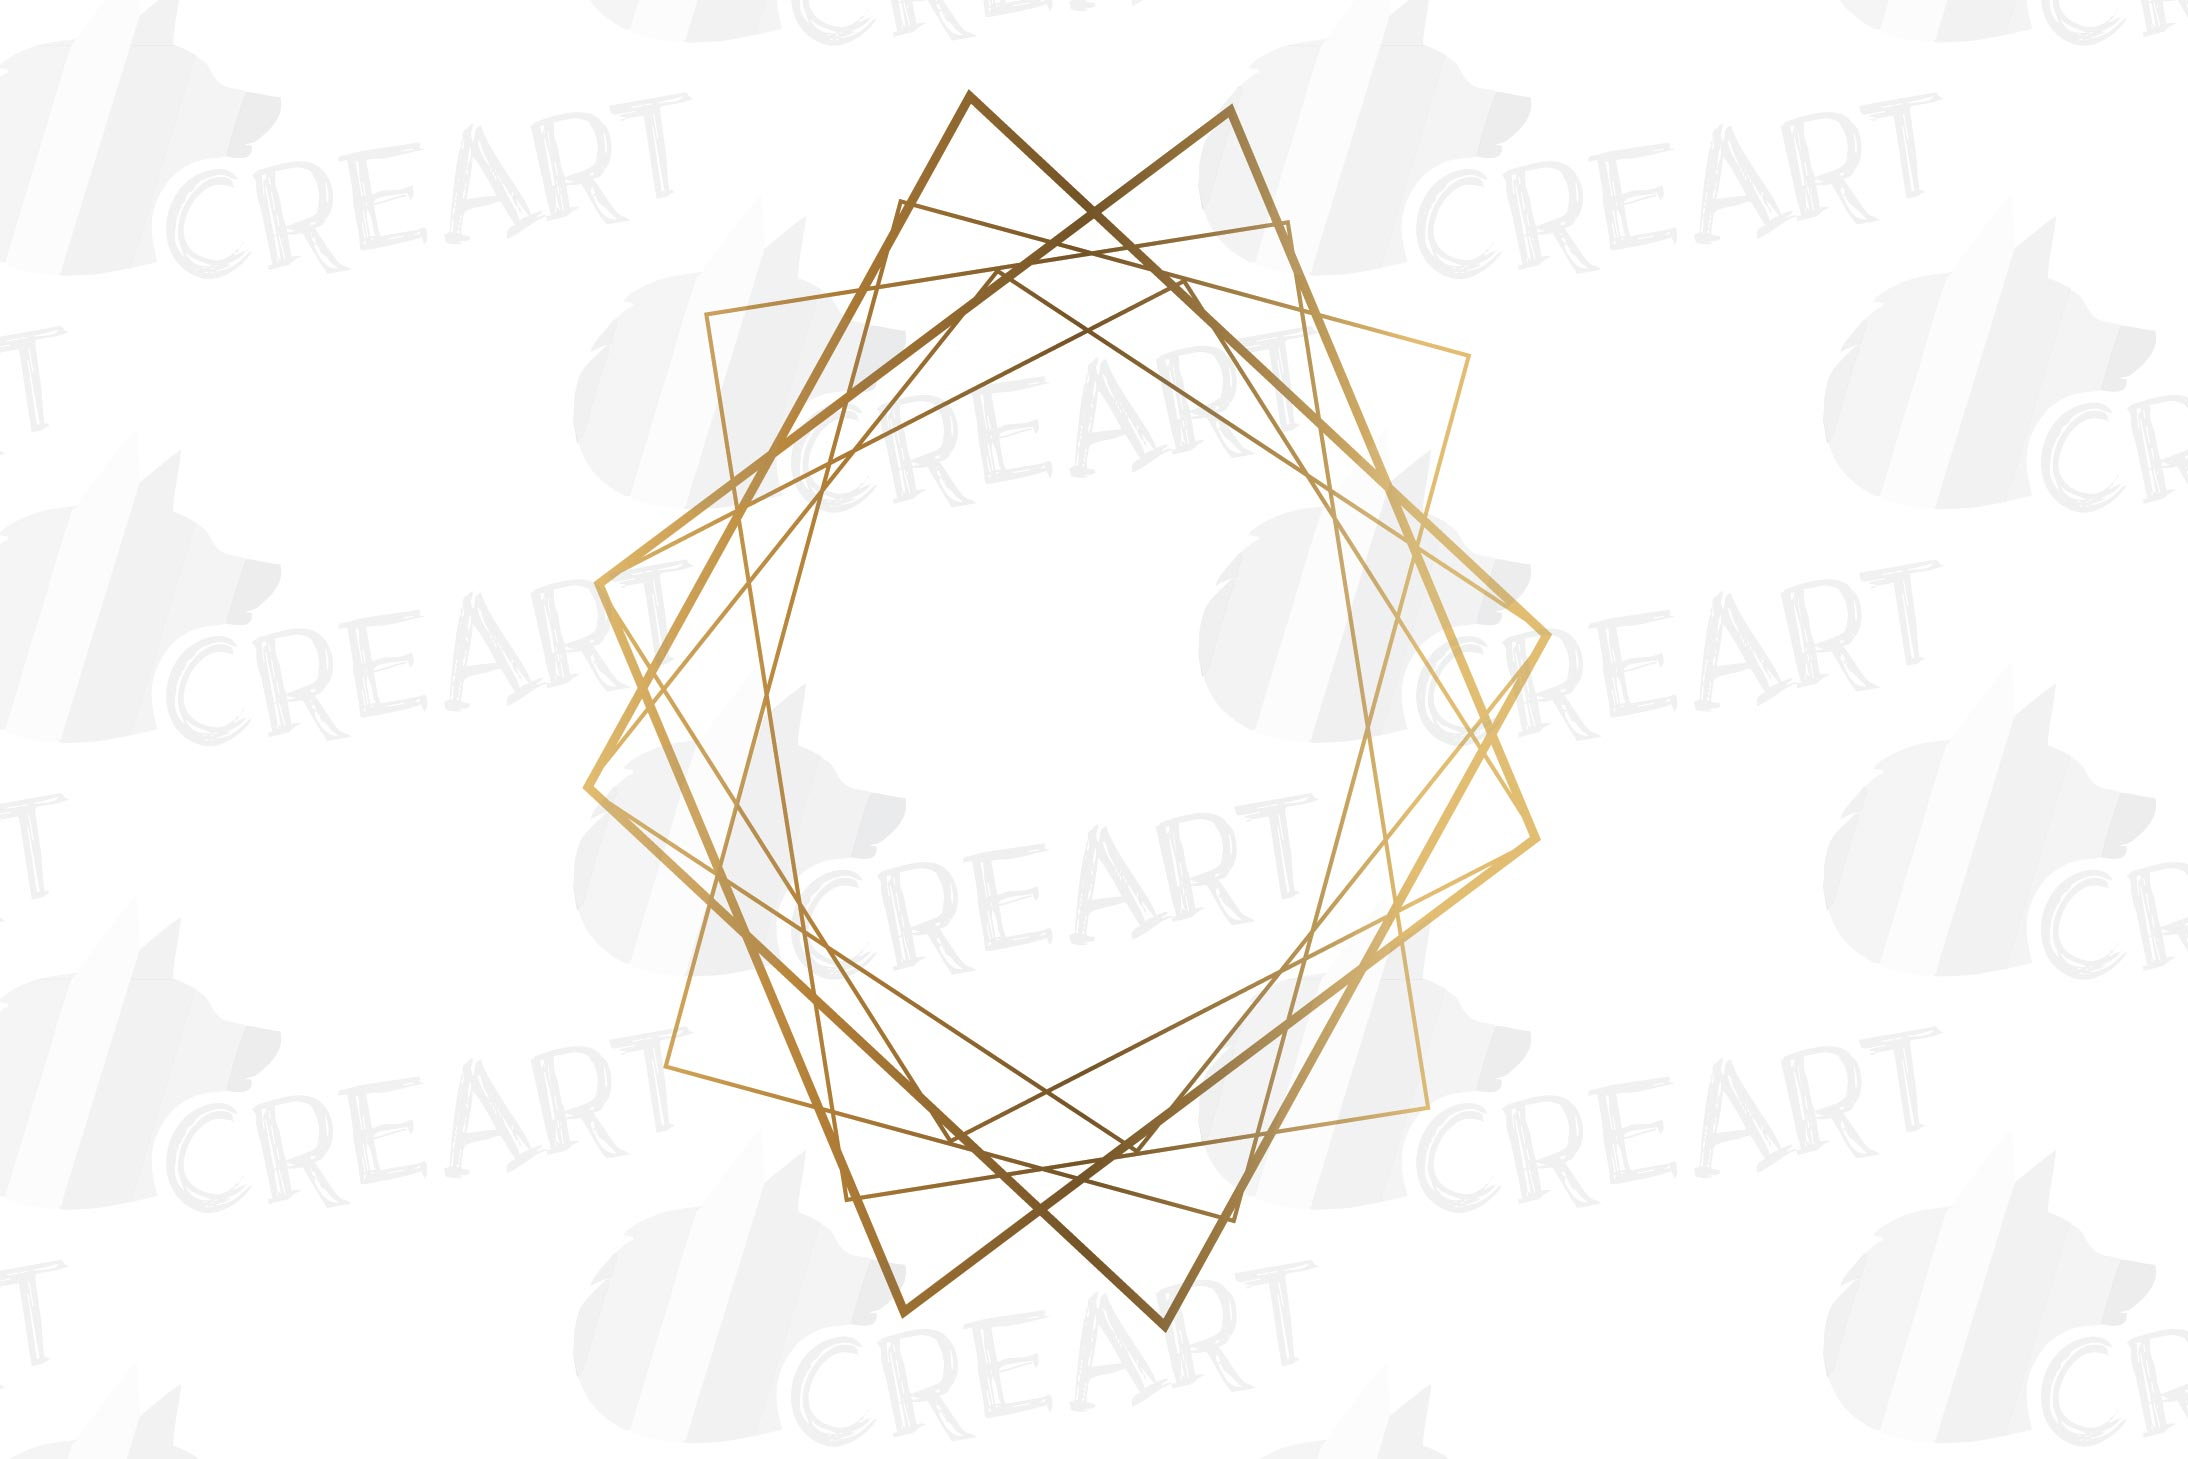 Elegant wedding geometric golden frames, lineal frames svg example image 19